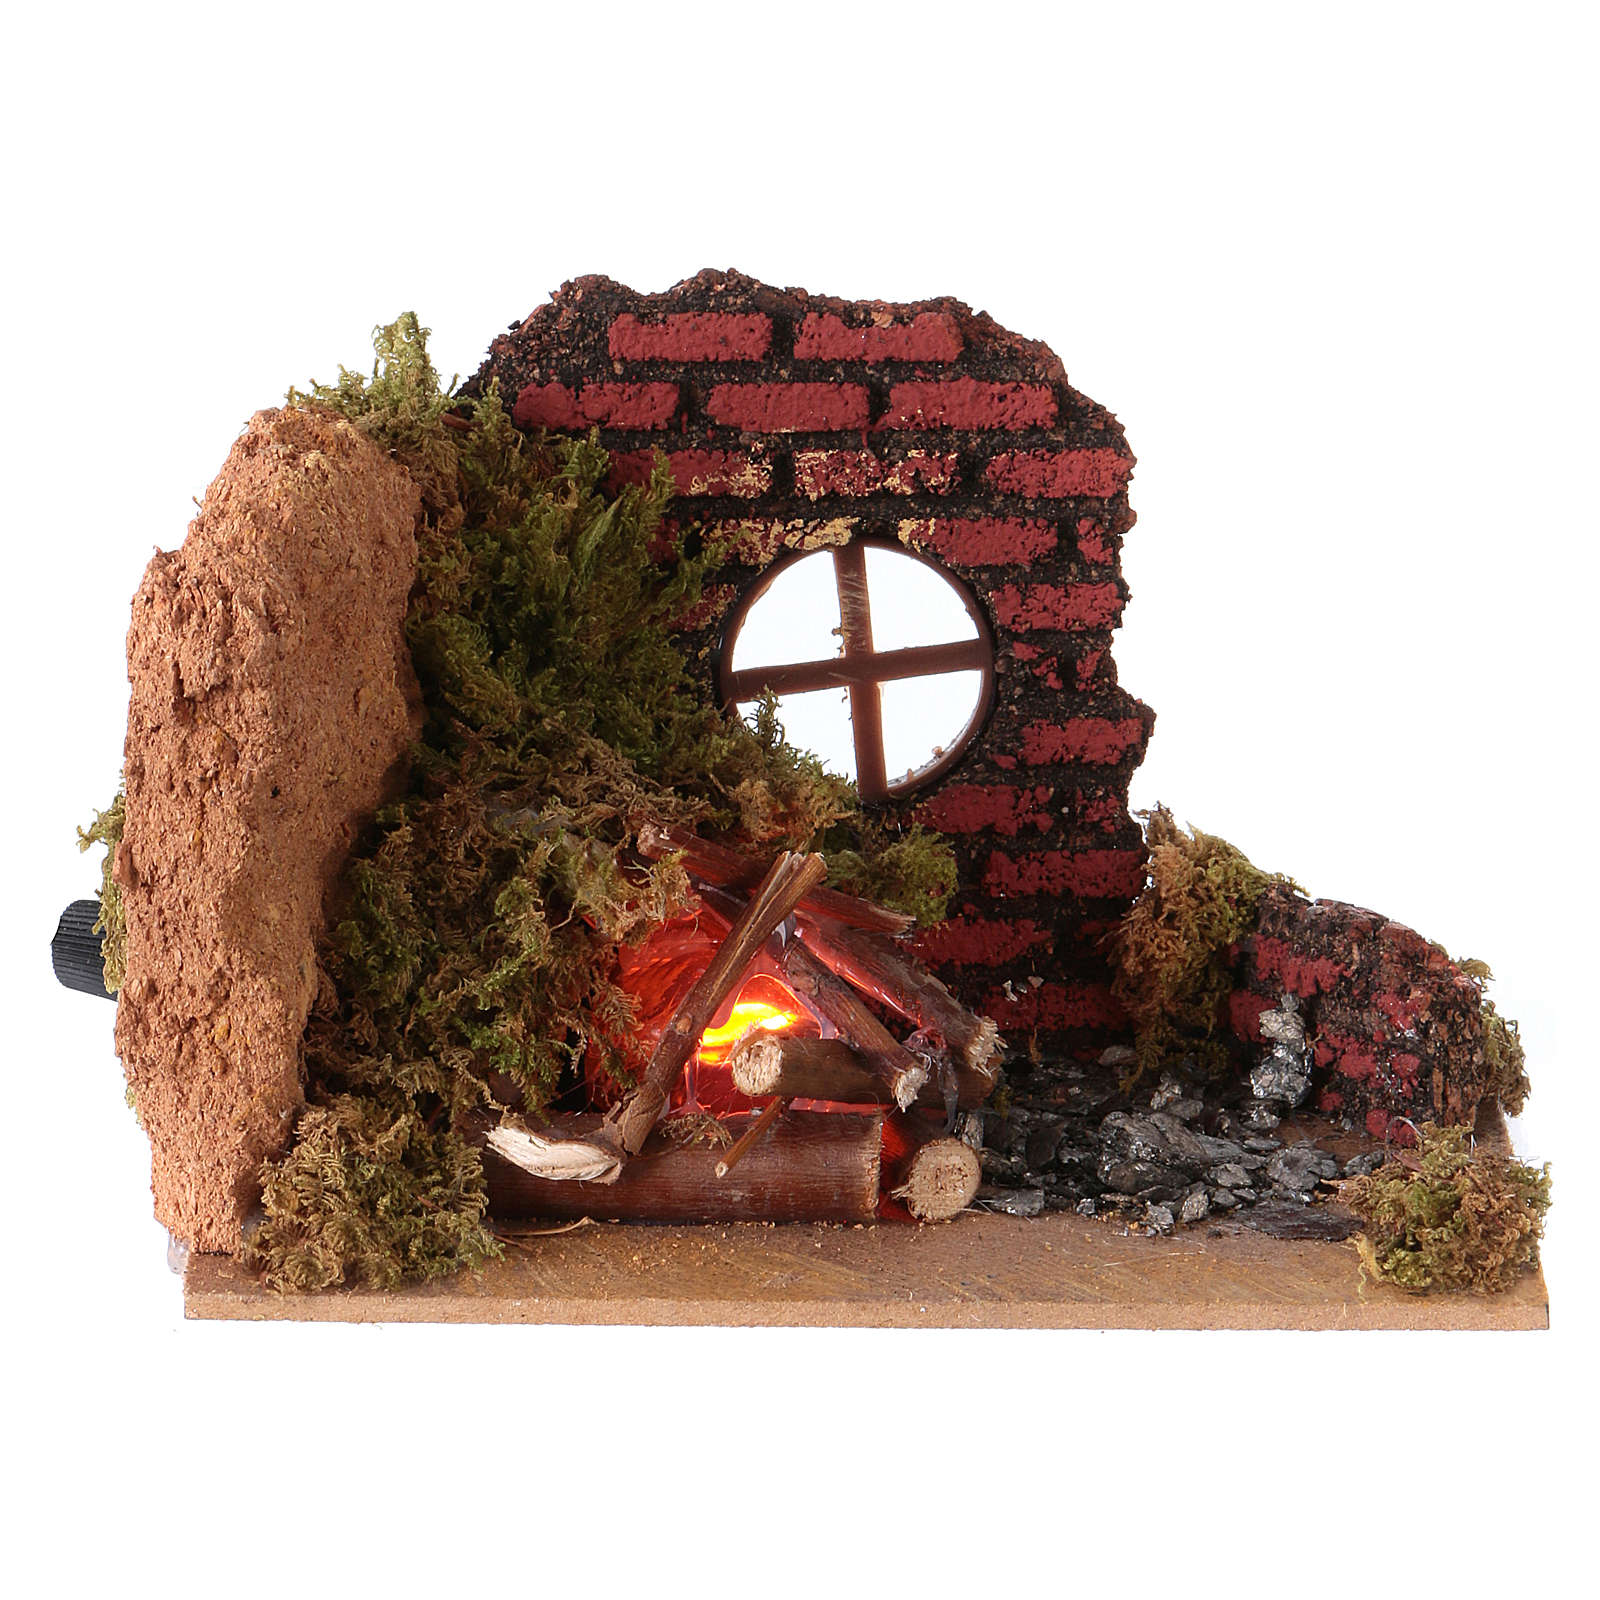 Nativity fire flame effect lamp 15x10 4